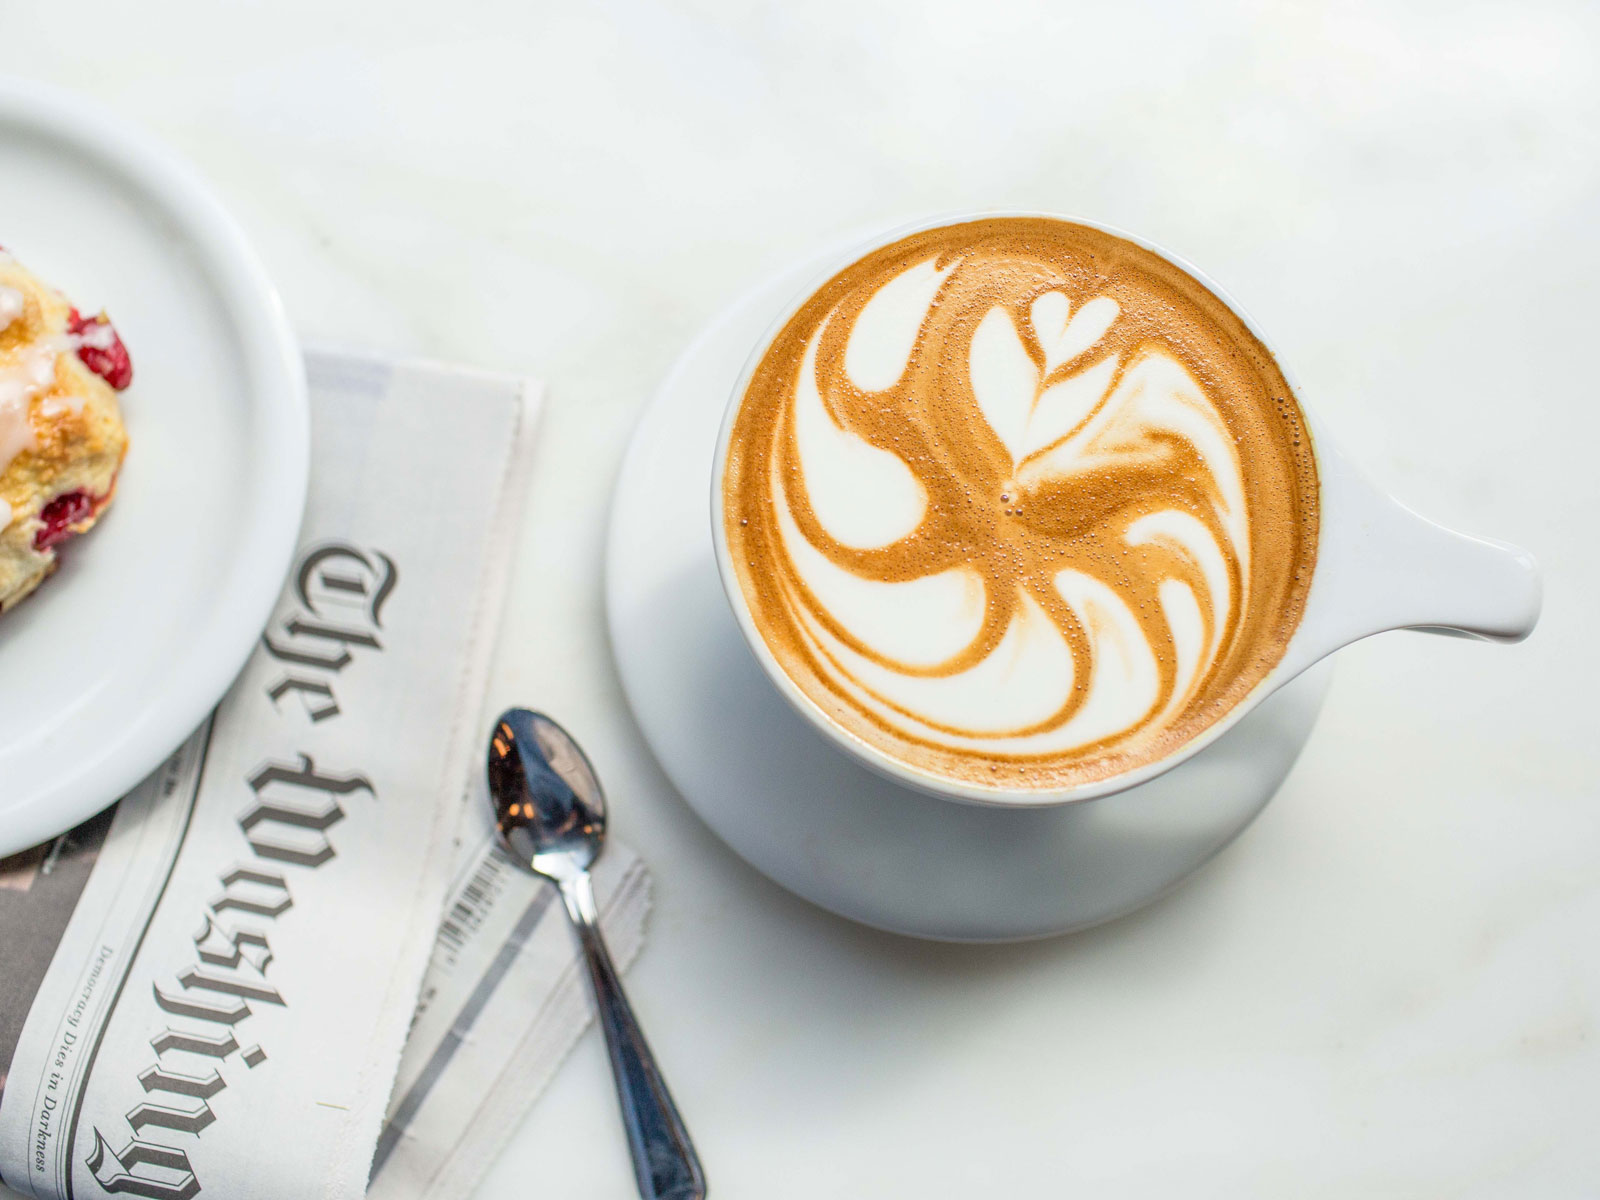 The Best Coffee in Washington, D.C. Keeps Getting Better